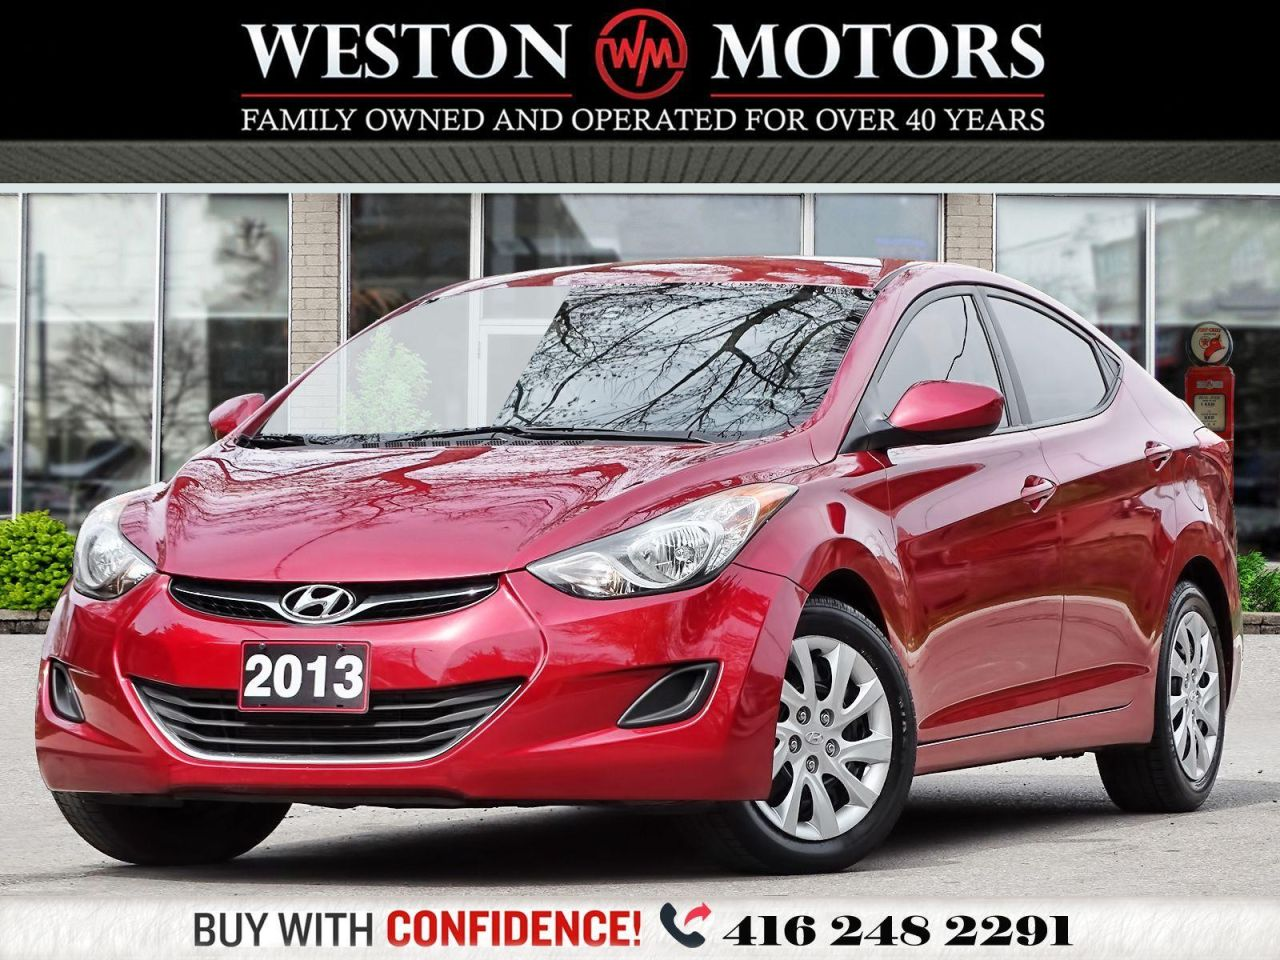 2013 Hyundai Elantra GLS*2.0L*HEATED SEATS*GREAT SHAPE!